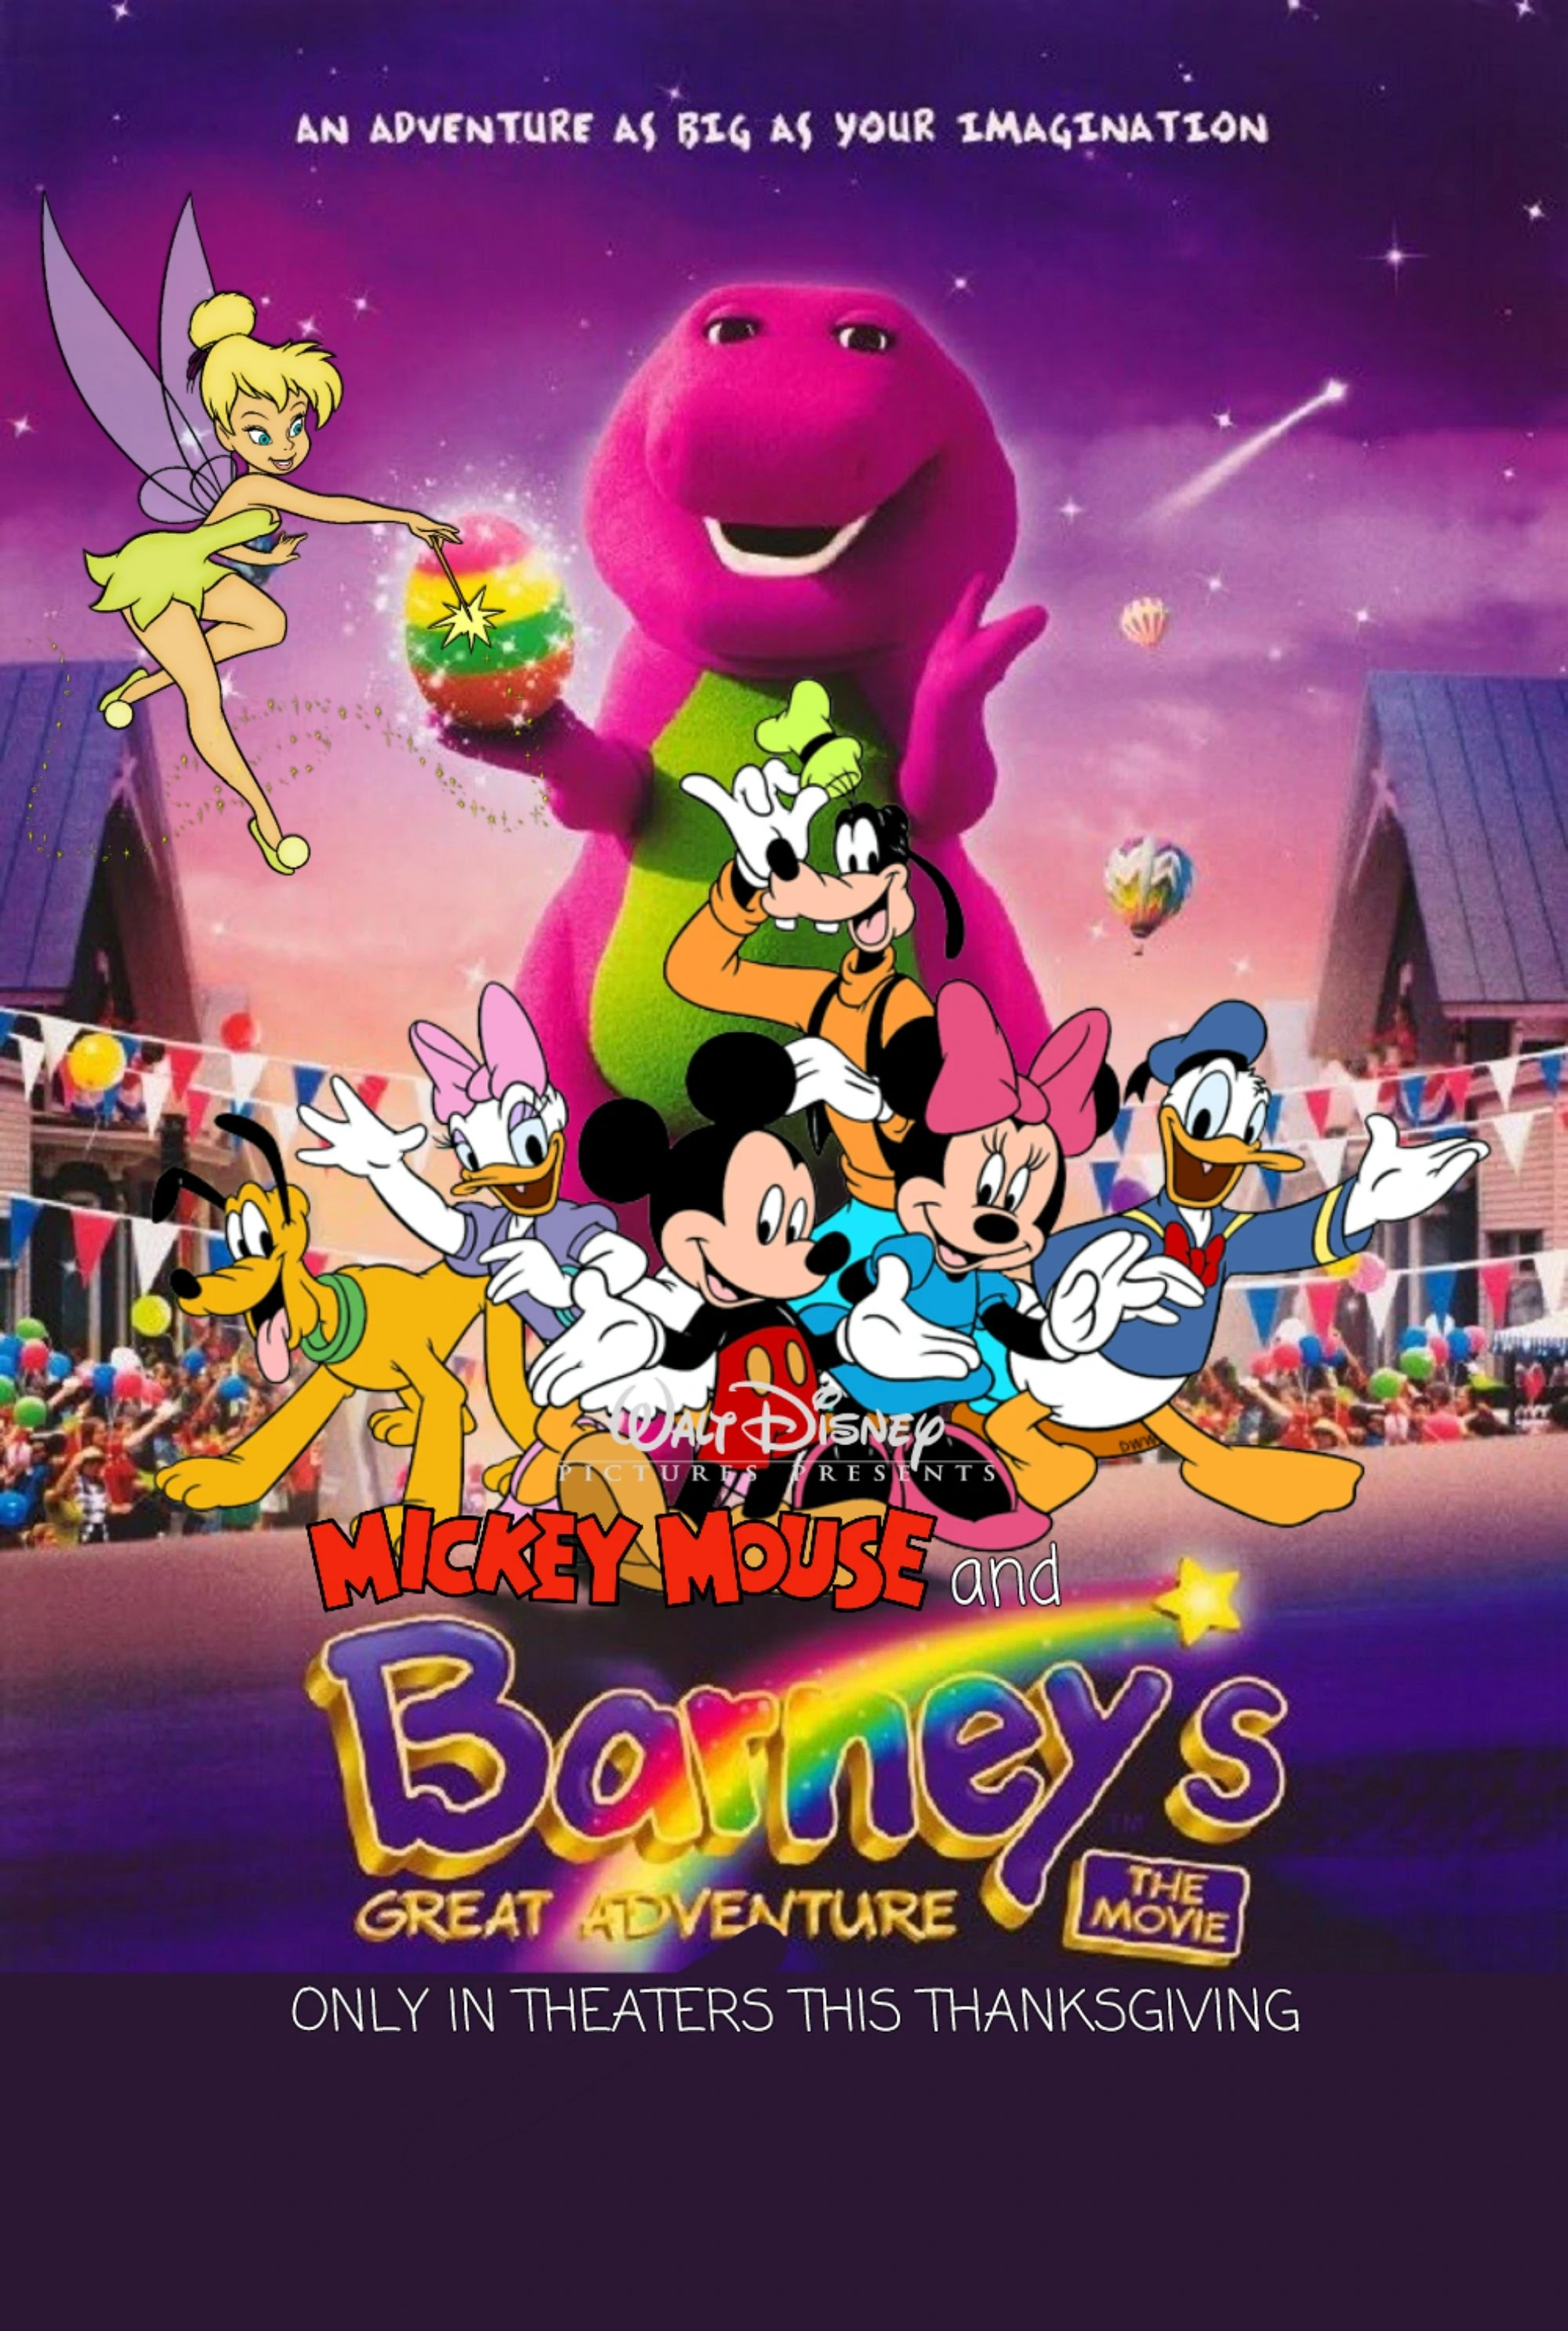 Barney Friends January 2020 - Year of Clean Water